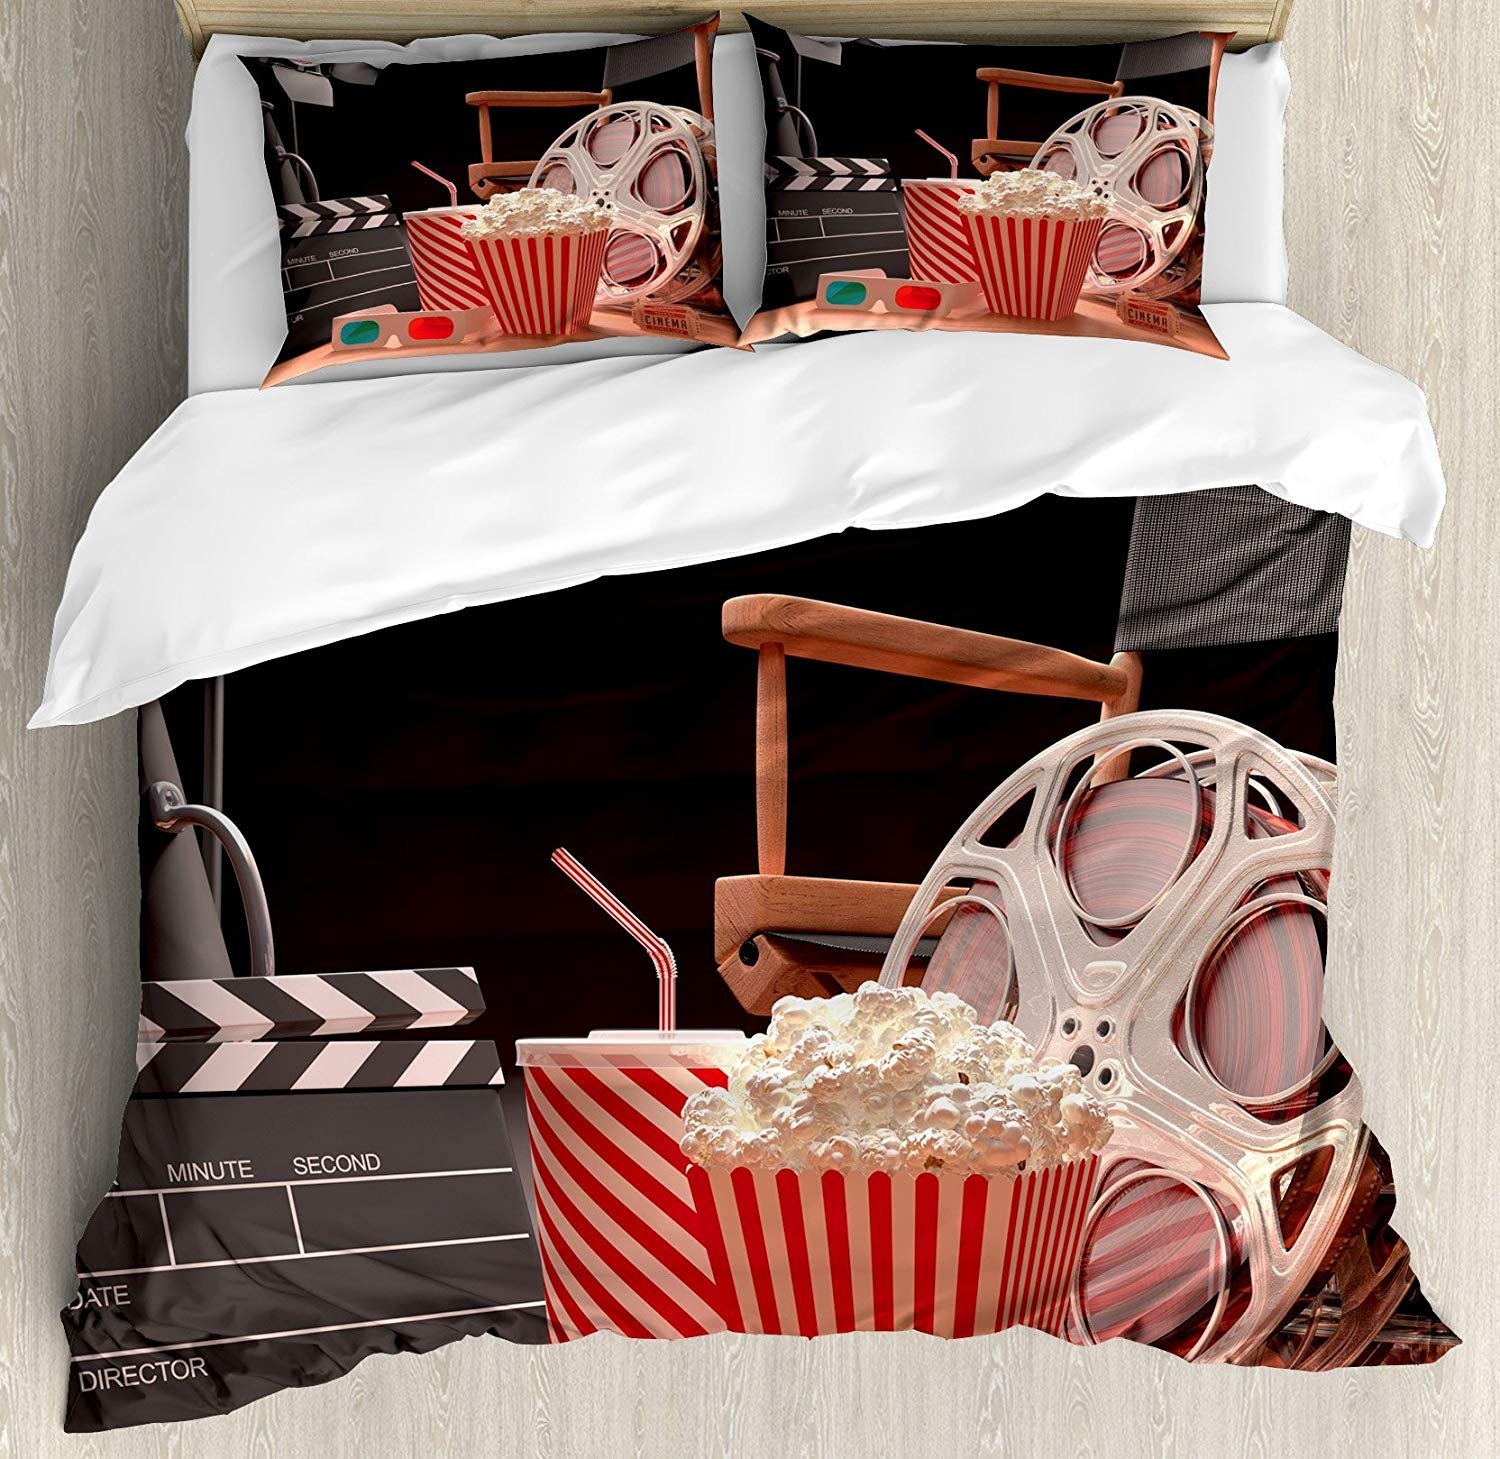 Twin Size Movie Theater 3 PCS Duvet Cover Set, Objects of the Film Industry Hollywood Motion Picture Cinematography Concept, Bedding Set Quilt Bedspread for Children/Teens/Adults/Kids, Multicolor